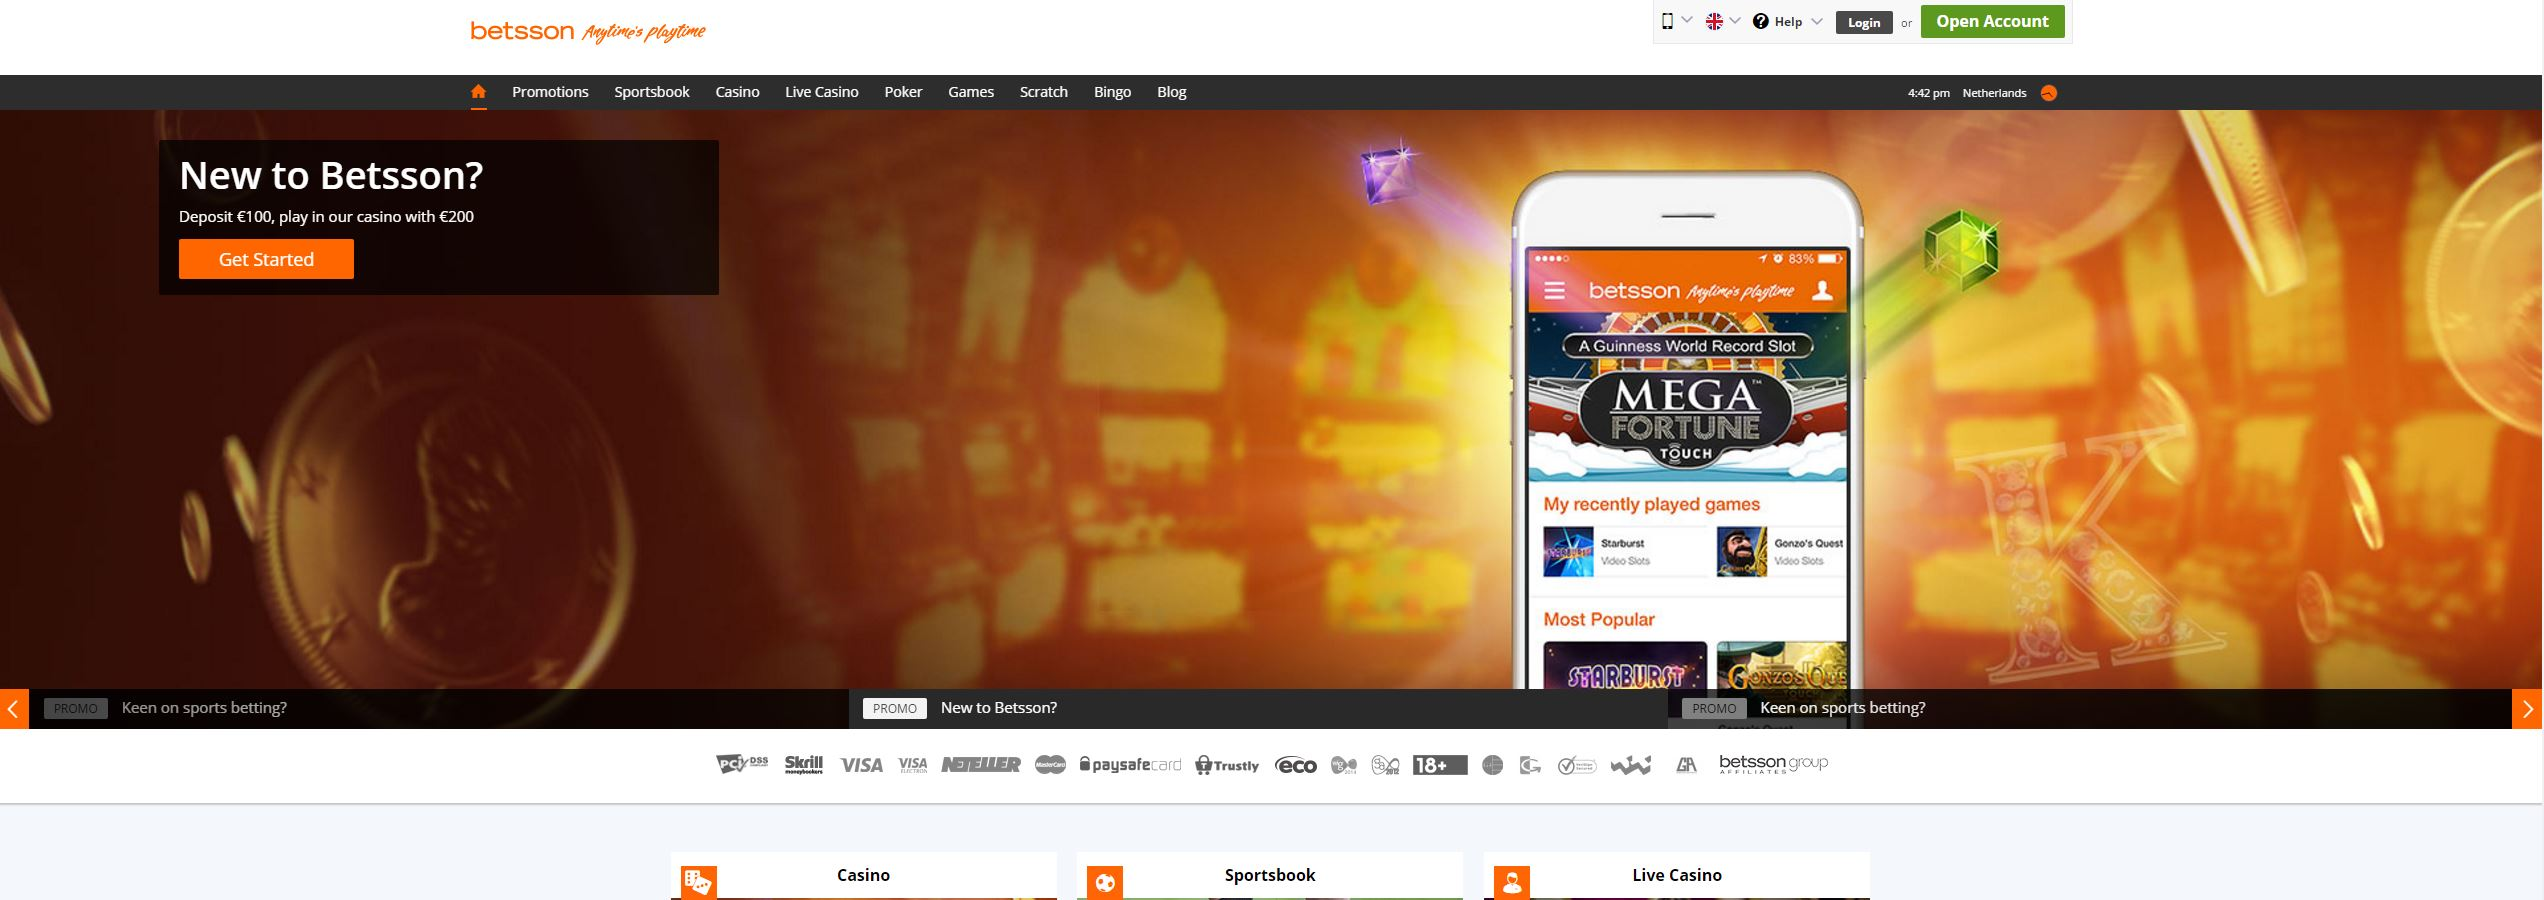 Betsson Home Page